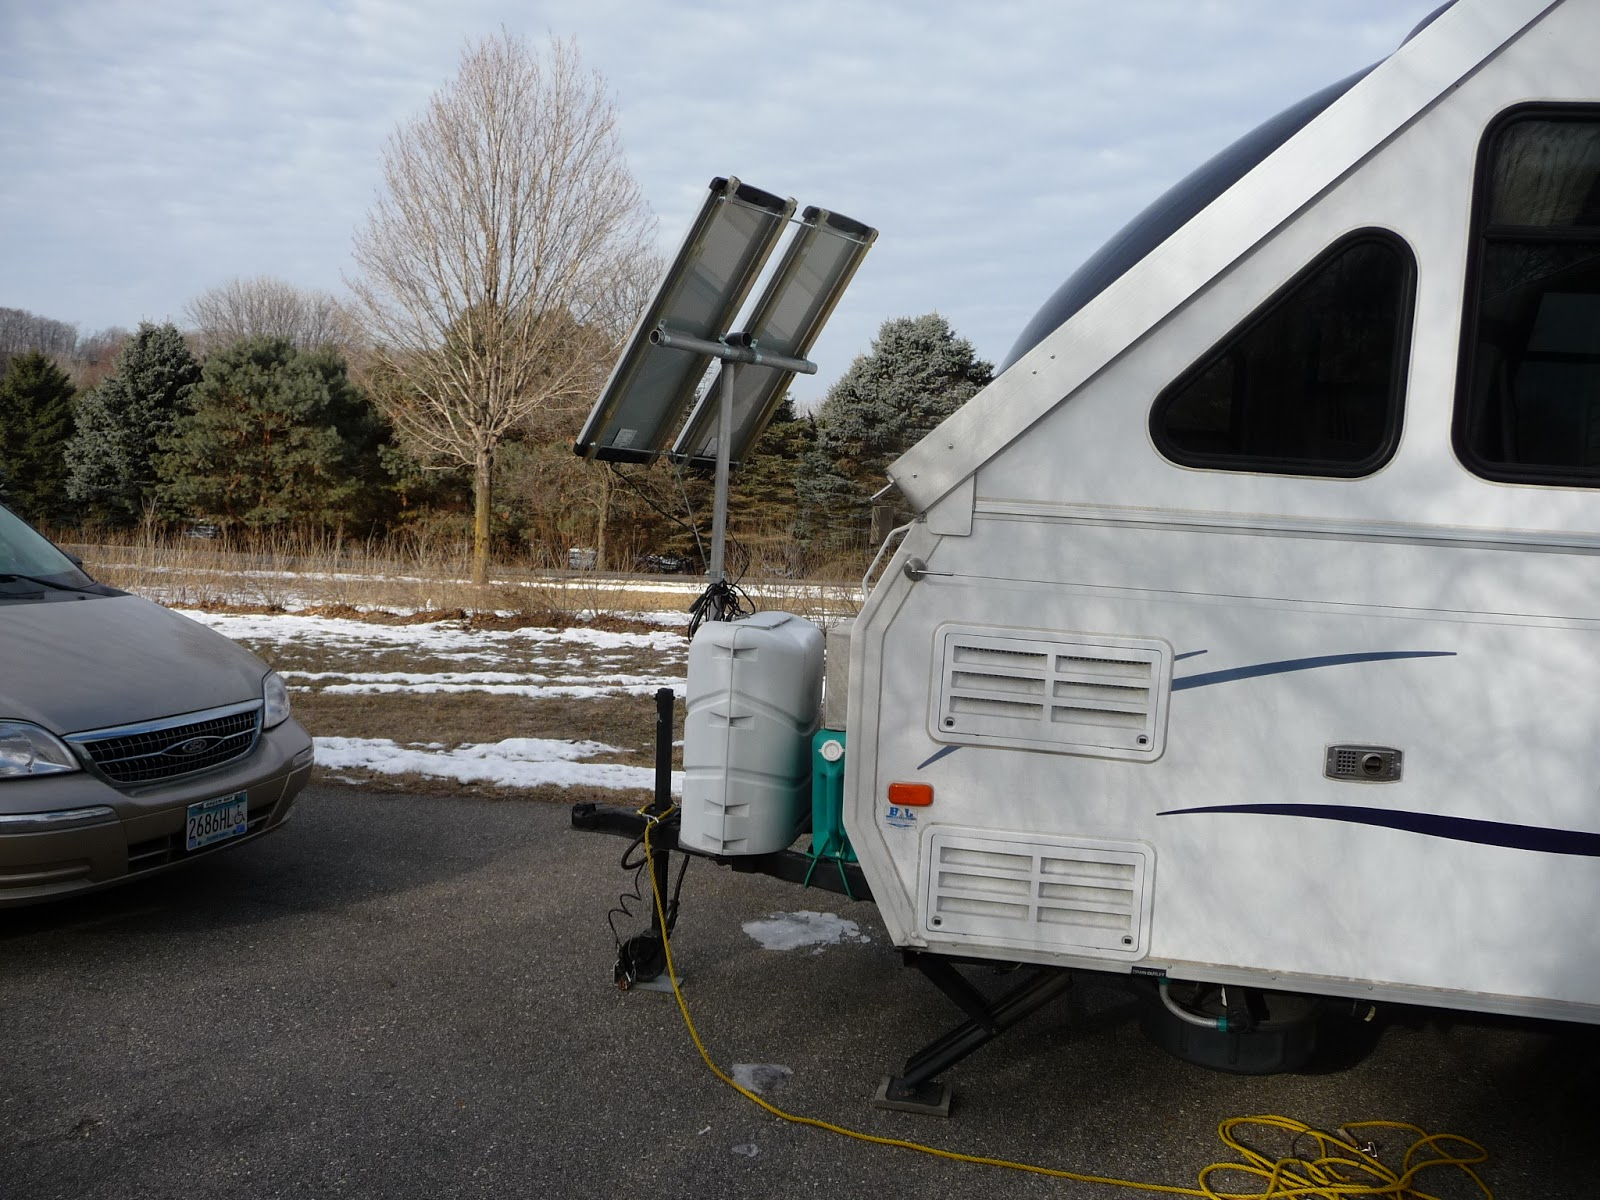 Solar Panel Support Pole And Frame Dave Theoleguy Nancys Plug Setup 2008 Aliner Camper Wiring Opposite Side Showing How Nicely The Sits So Van Doesnt Block Sun Rays